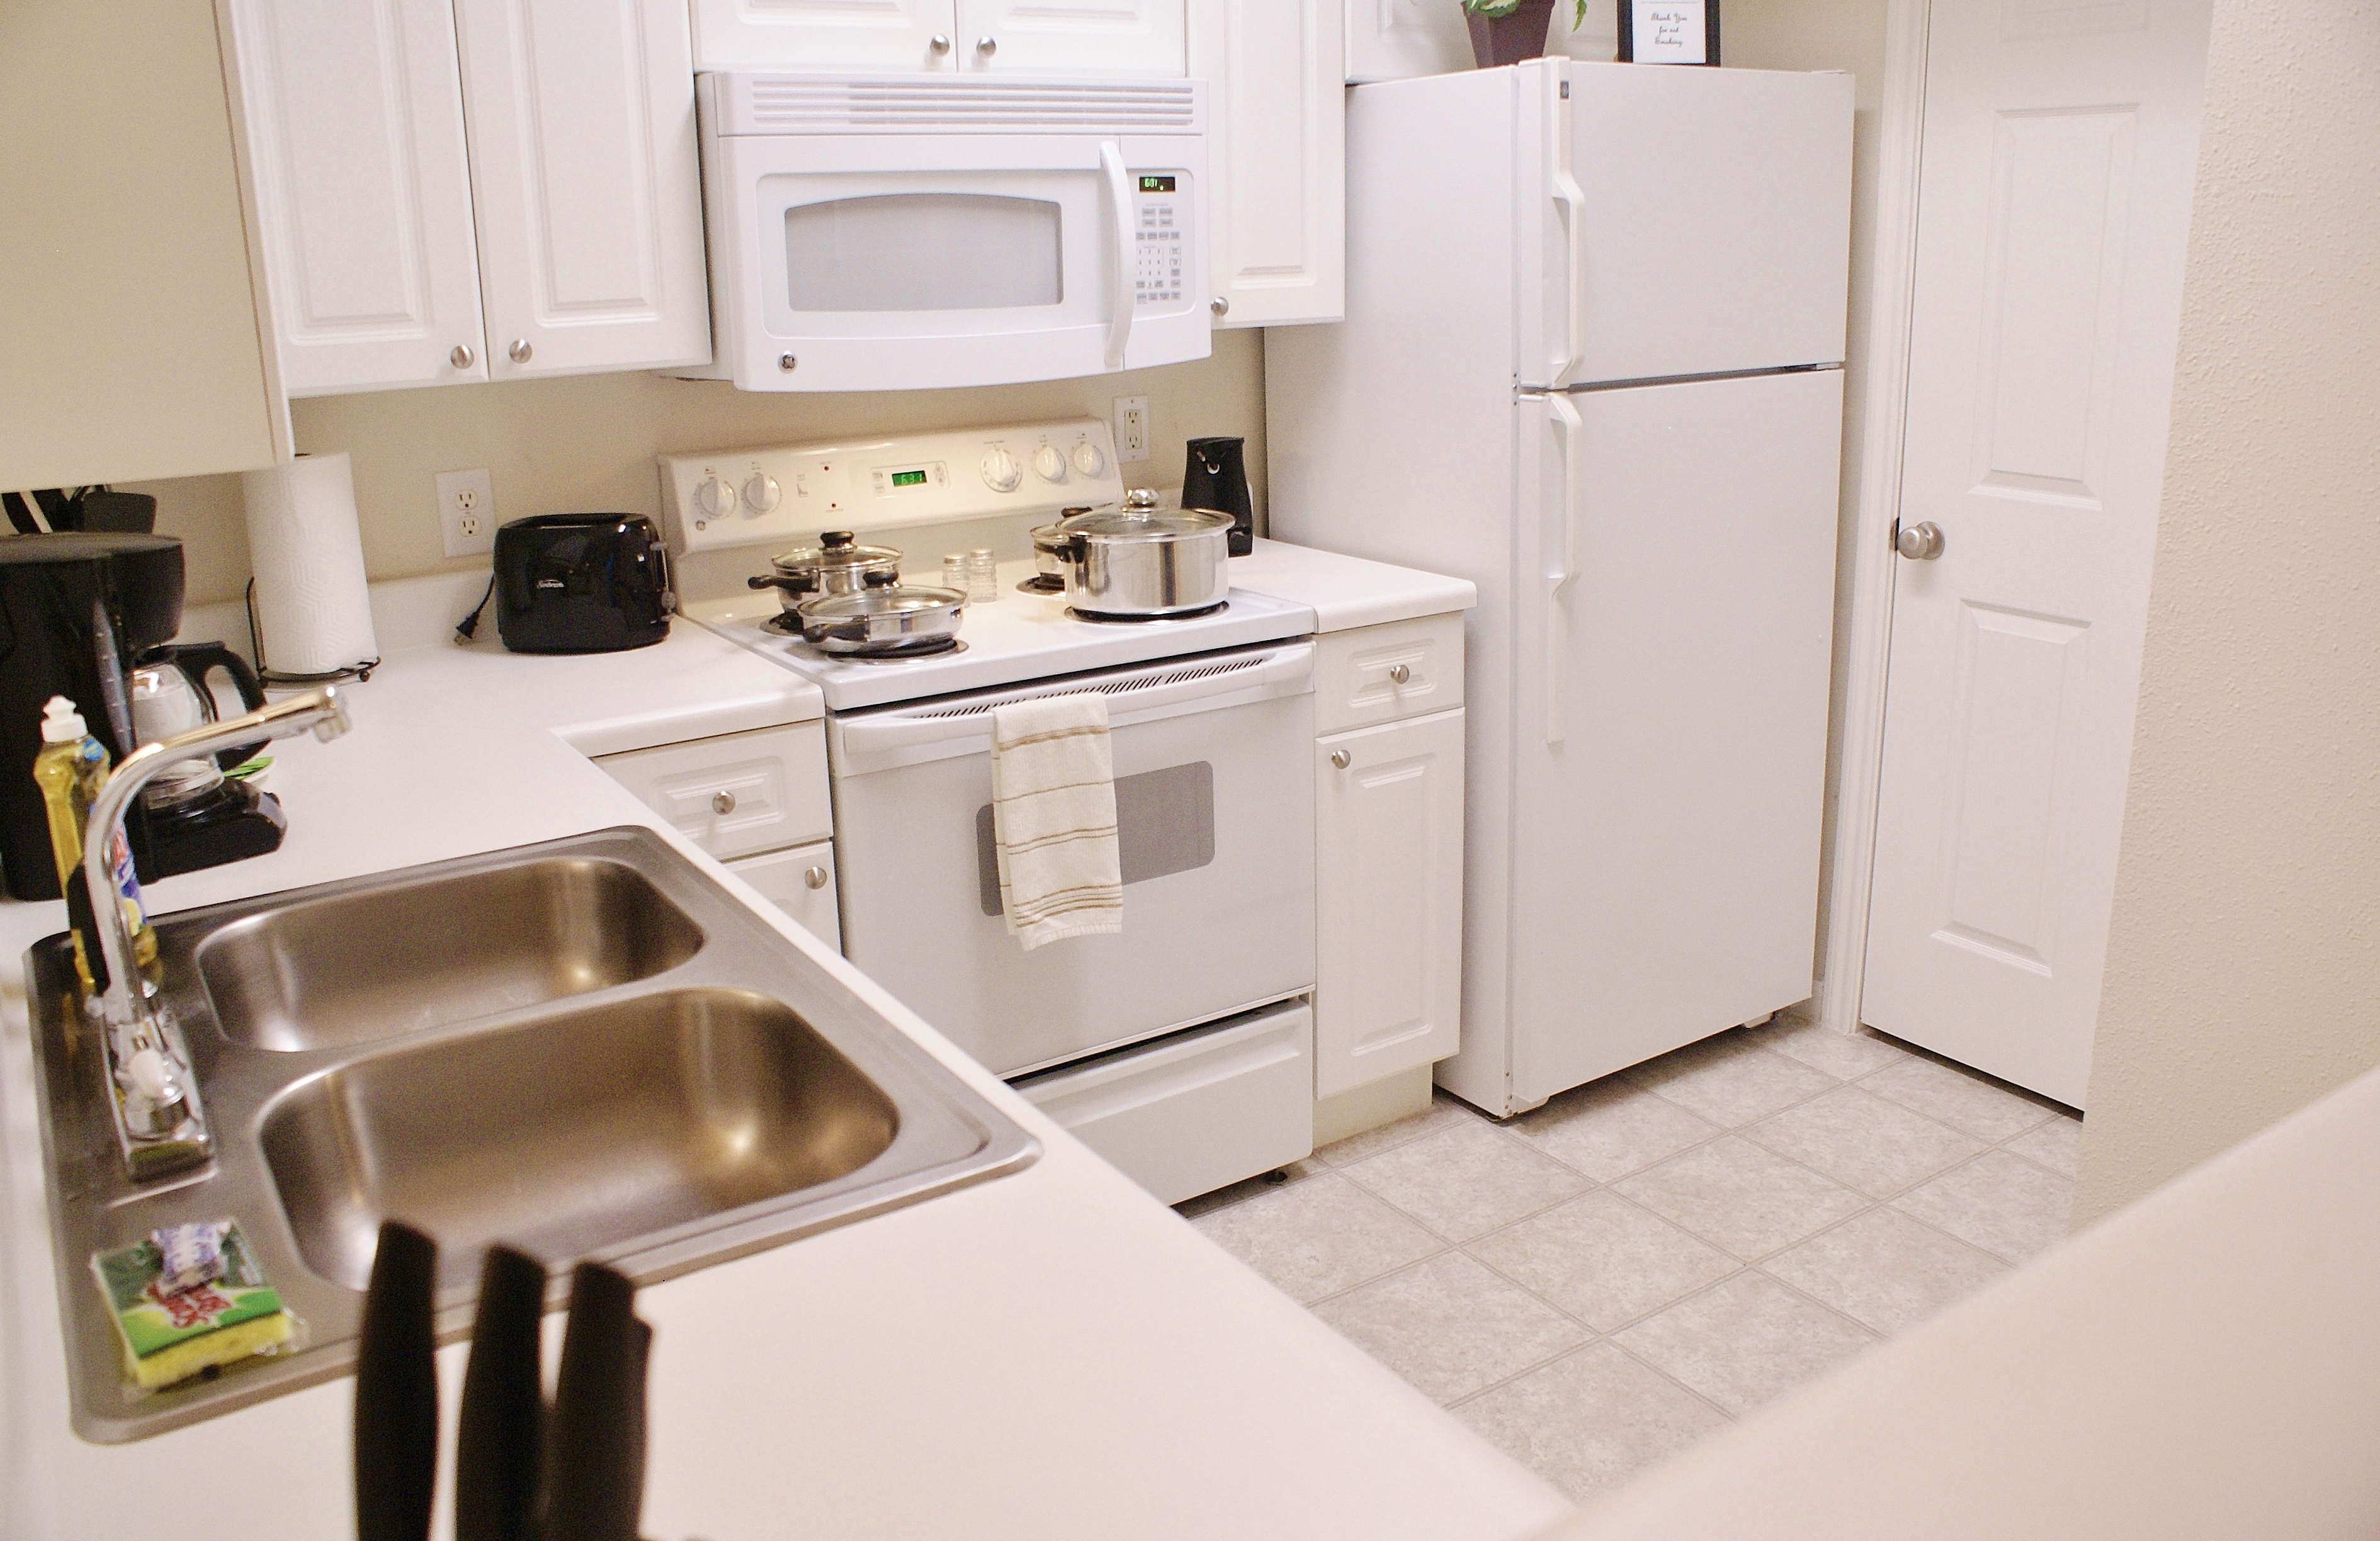 large kitchen stove oven microwave oven doube stainless steel sink coffee maker coffee mugs toaster papertowels pots and pans cookware electric can opener large kitchen towels sponge dish soap salt and peper shaker set refregerator upper and lower cabinets